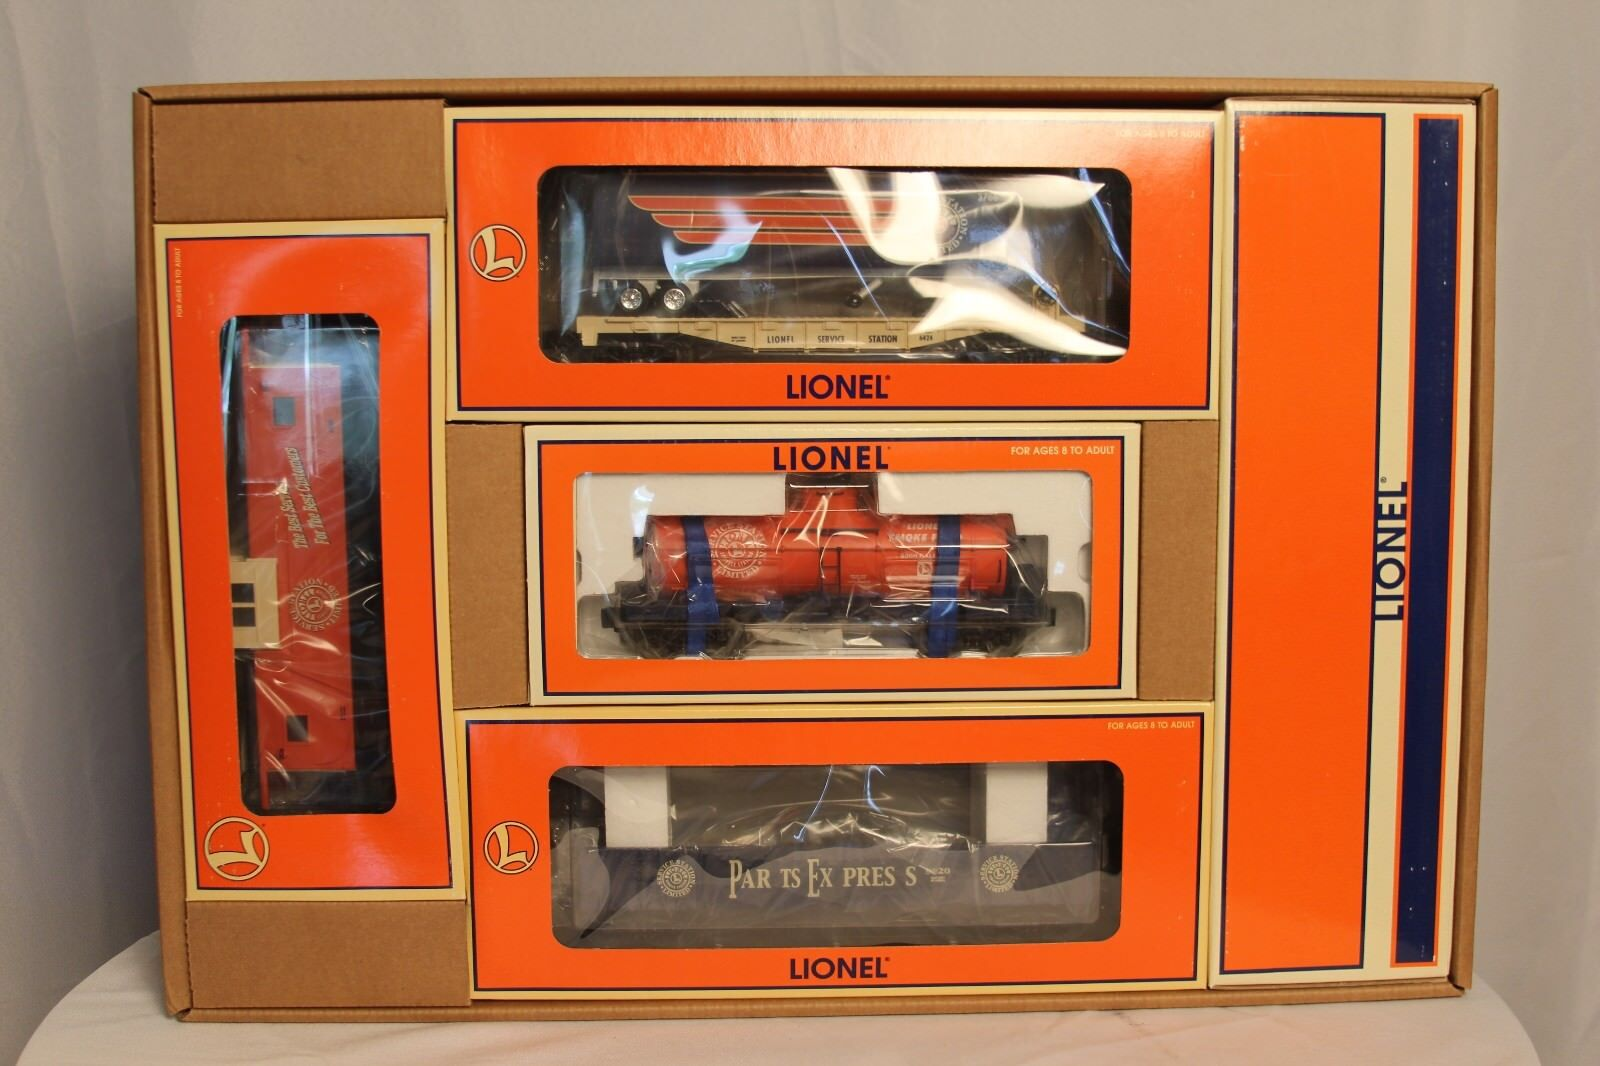 LIONEL 2000 SERVICE STATION SPECIAL SET  LIMITED EDITION NOS